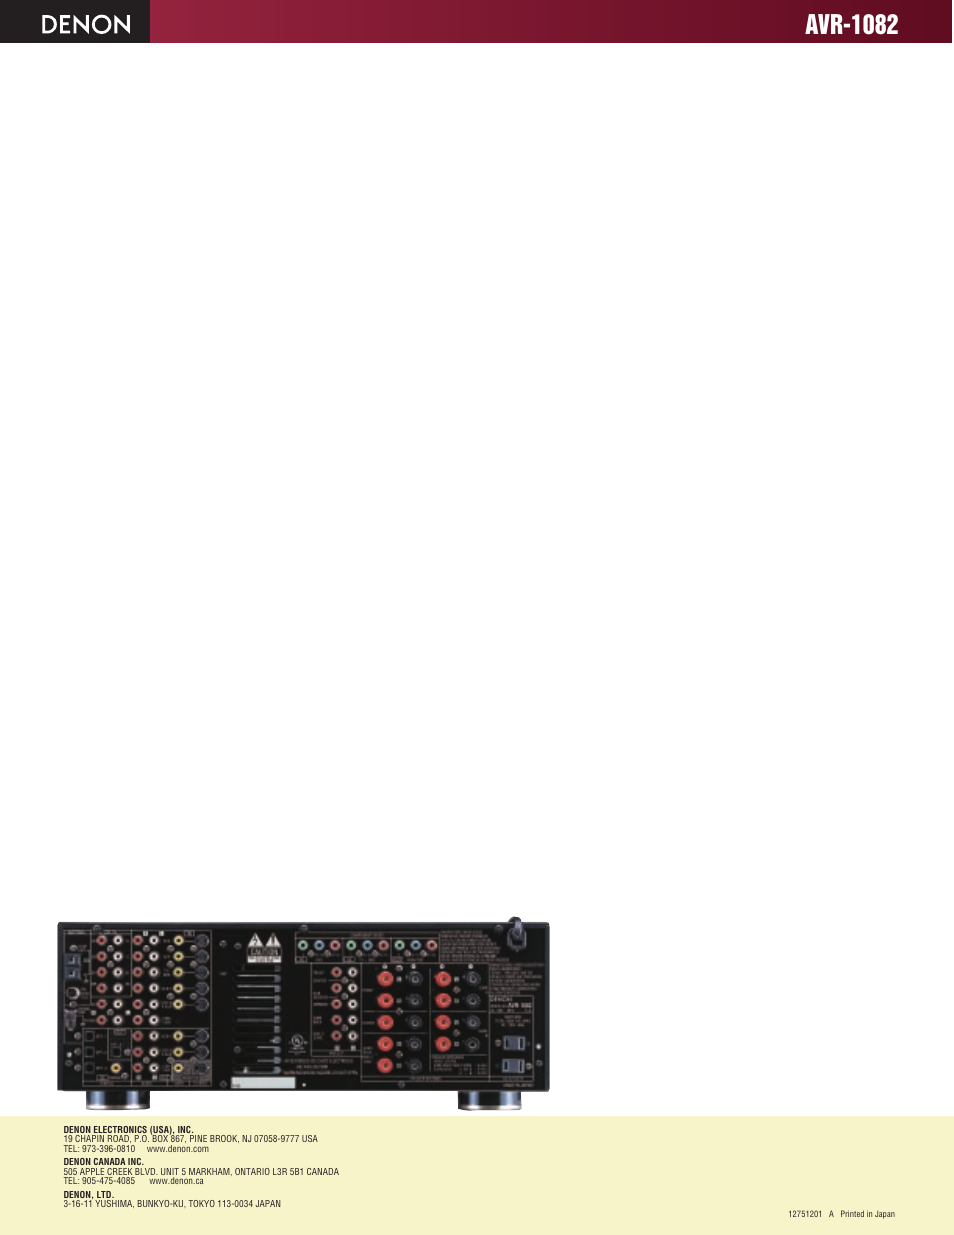 Avr-1082 | Denon AVR-1082 User Manual | Page 2 / 2